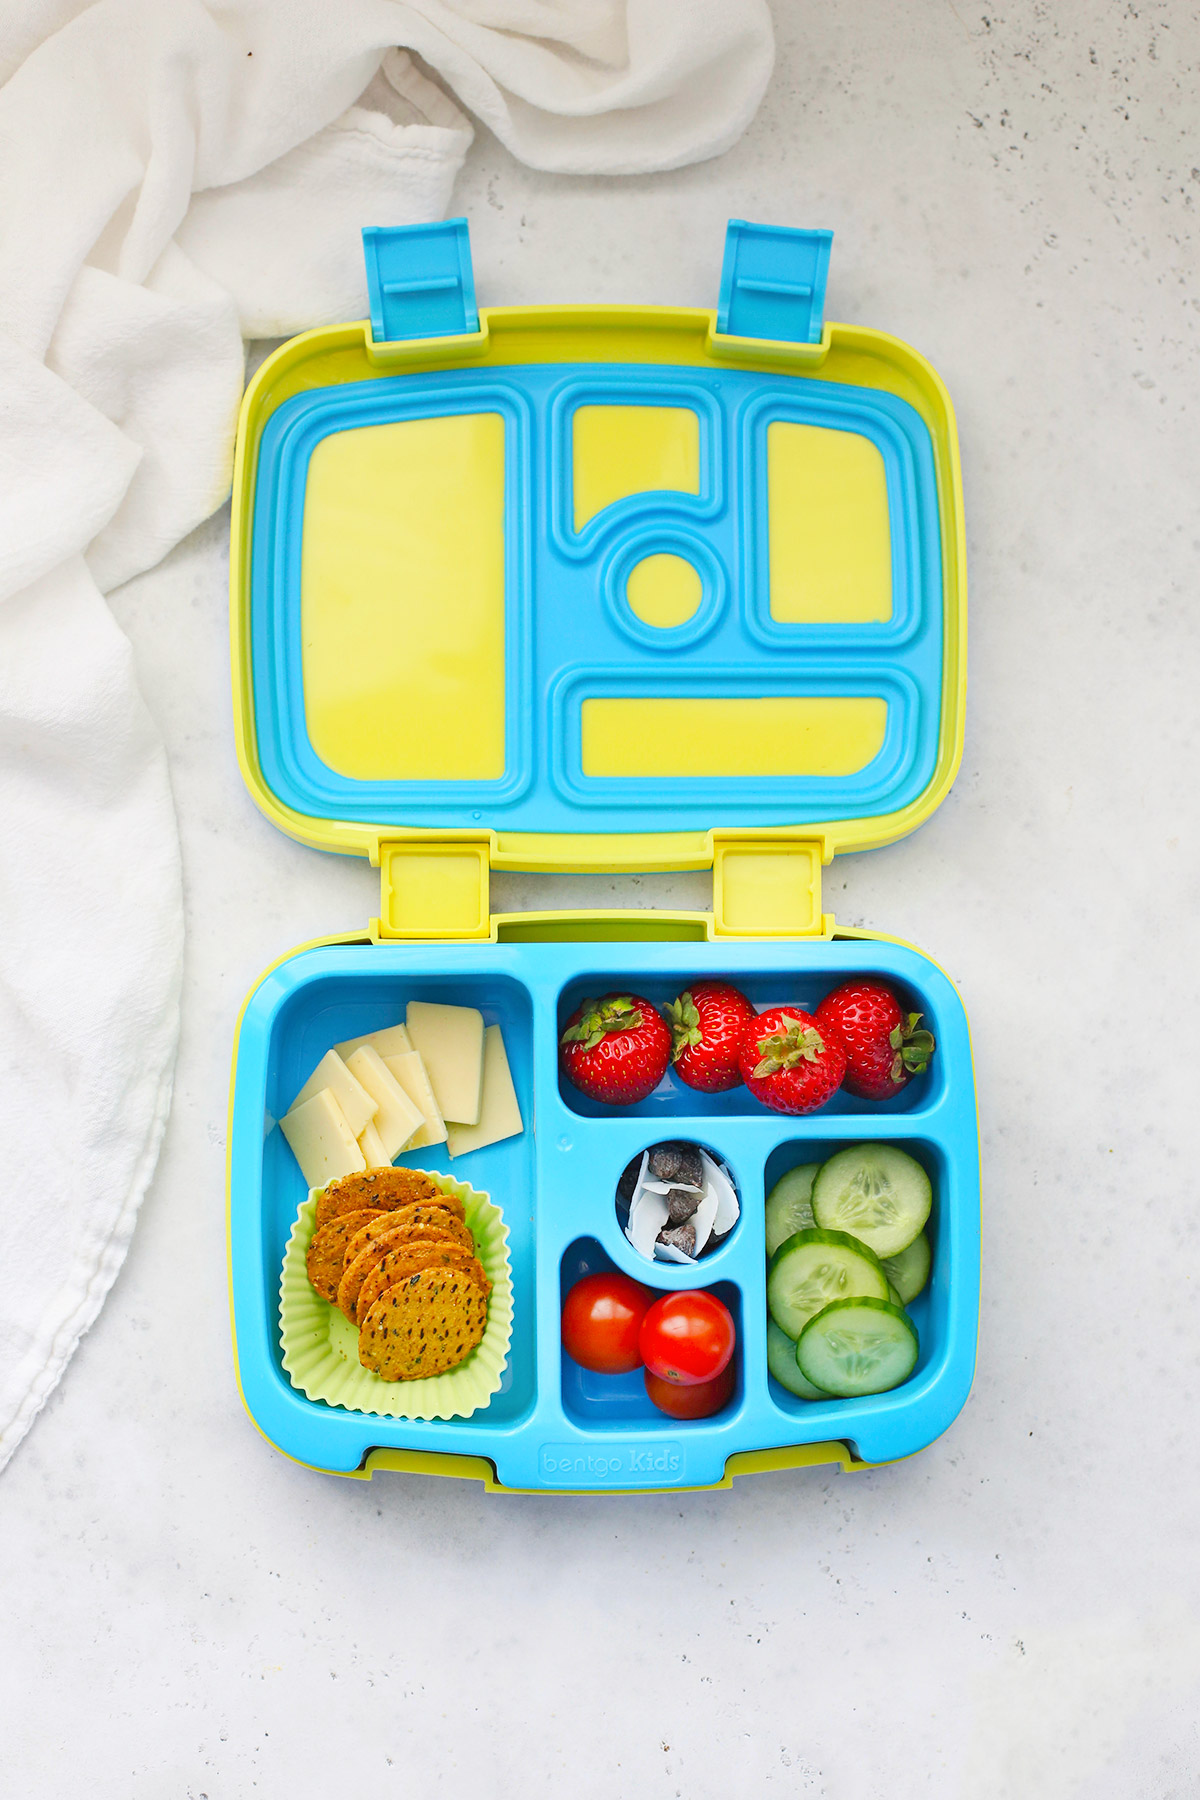 Blue and Yellow Bentgo lunchbox with cheese, crackers, strawberries, tomatoes, cucumbers, and trail mix.